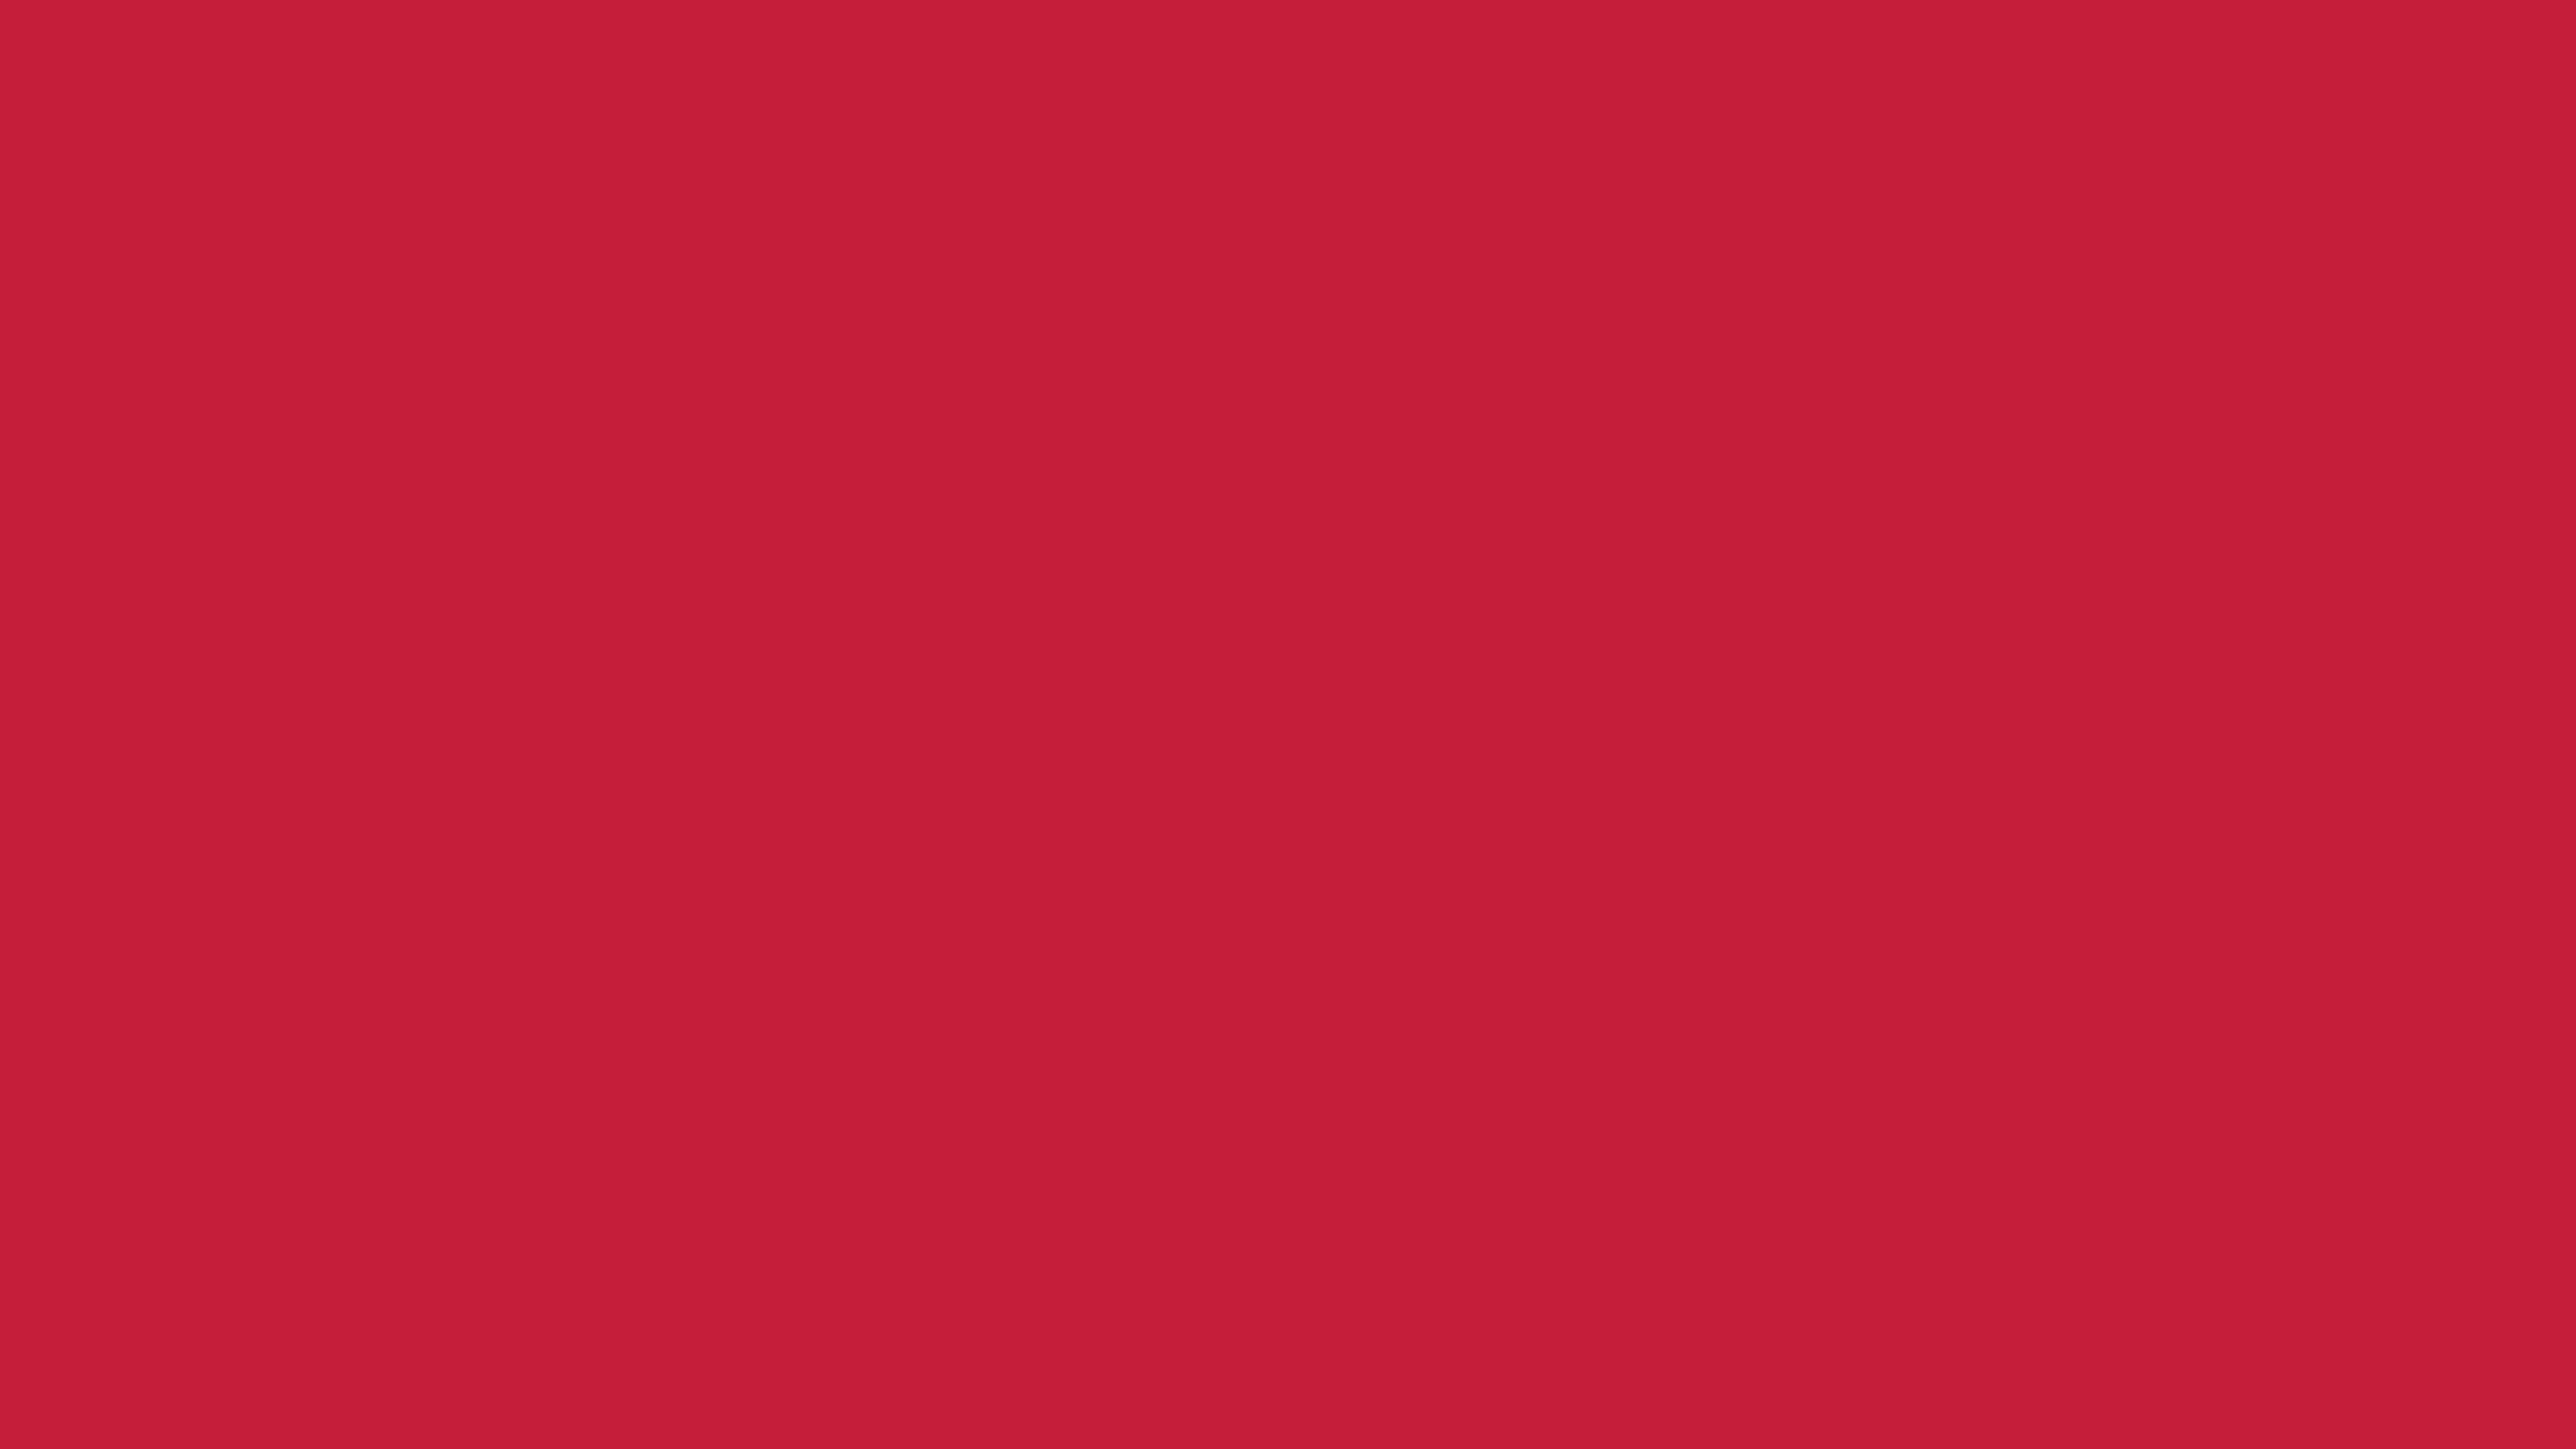 5120x2880 Cardinal Solid Color Background